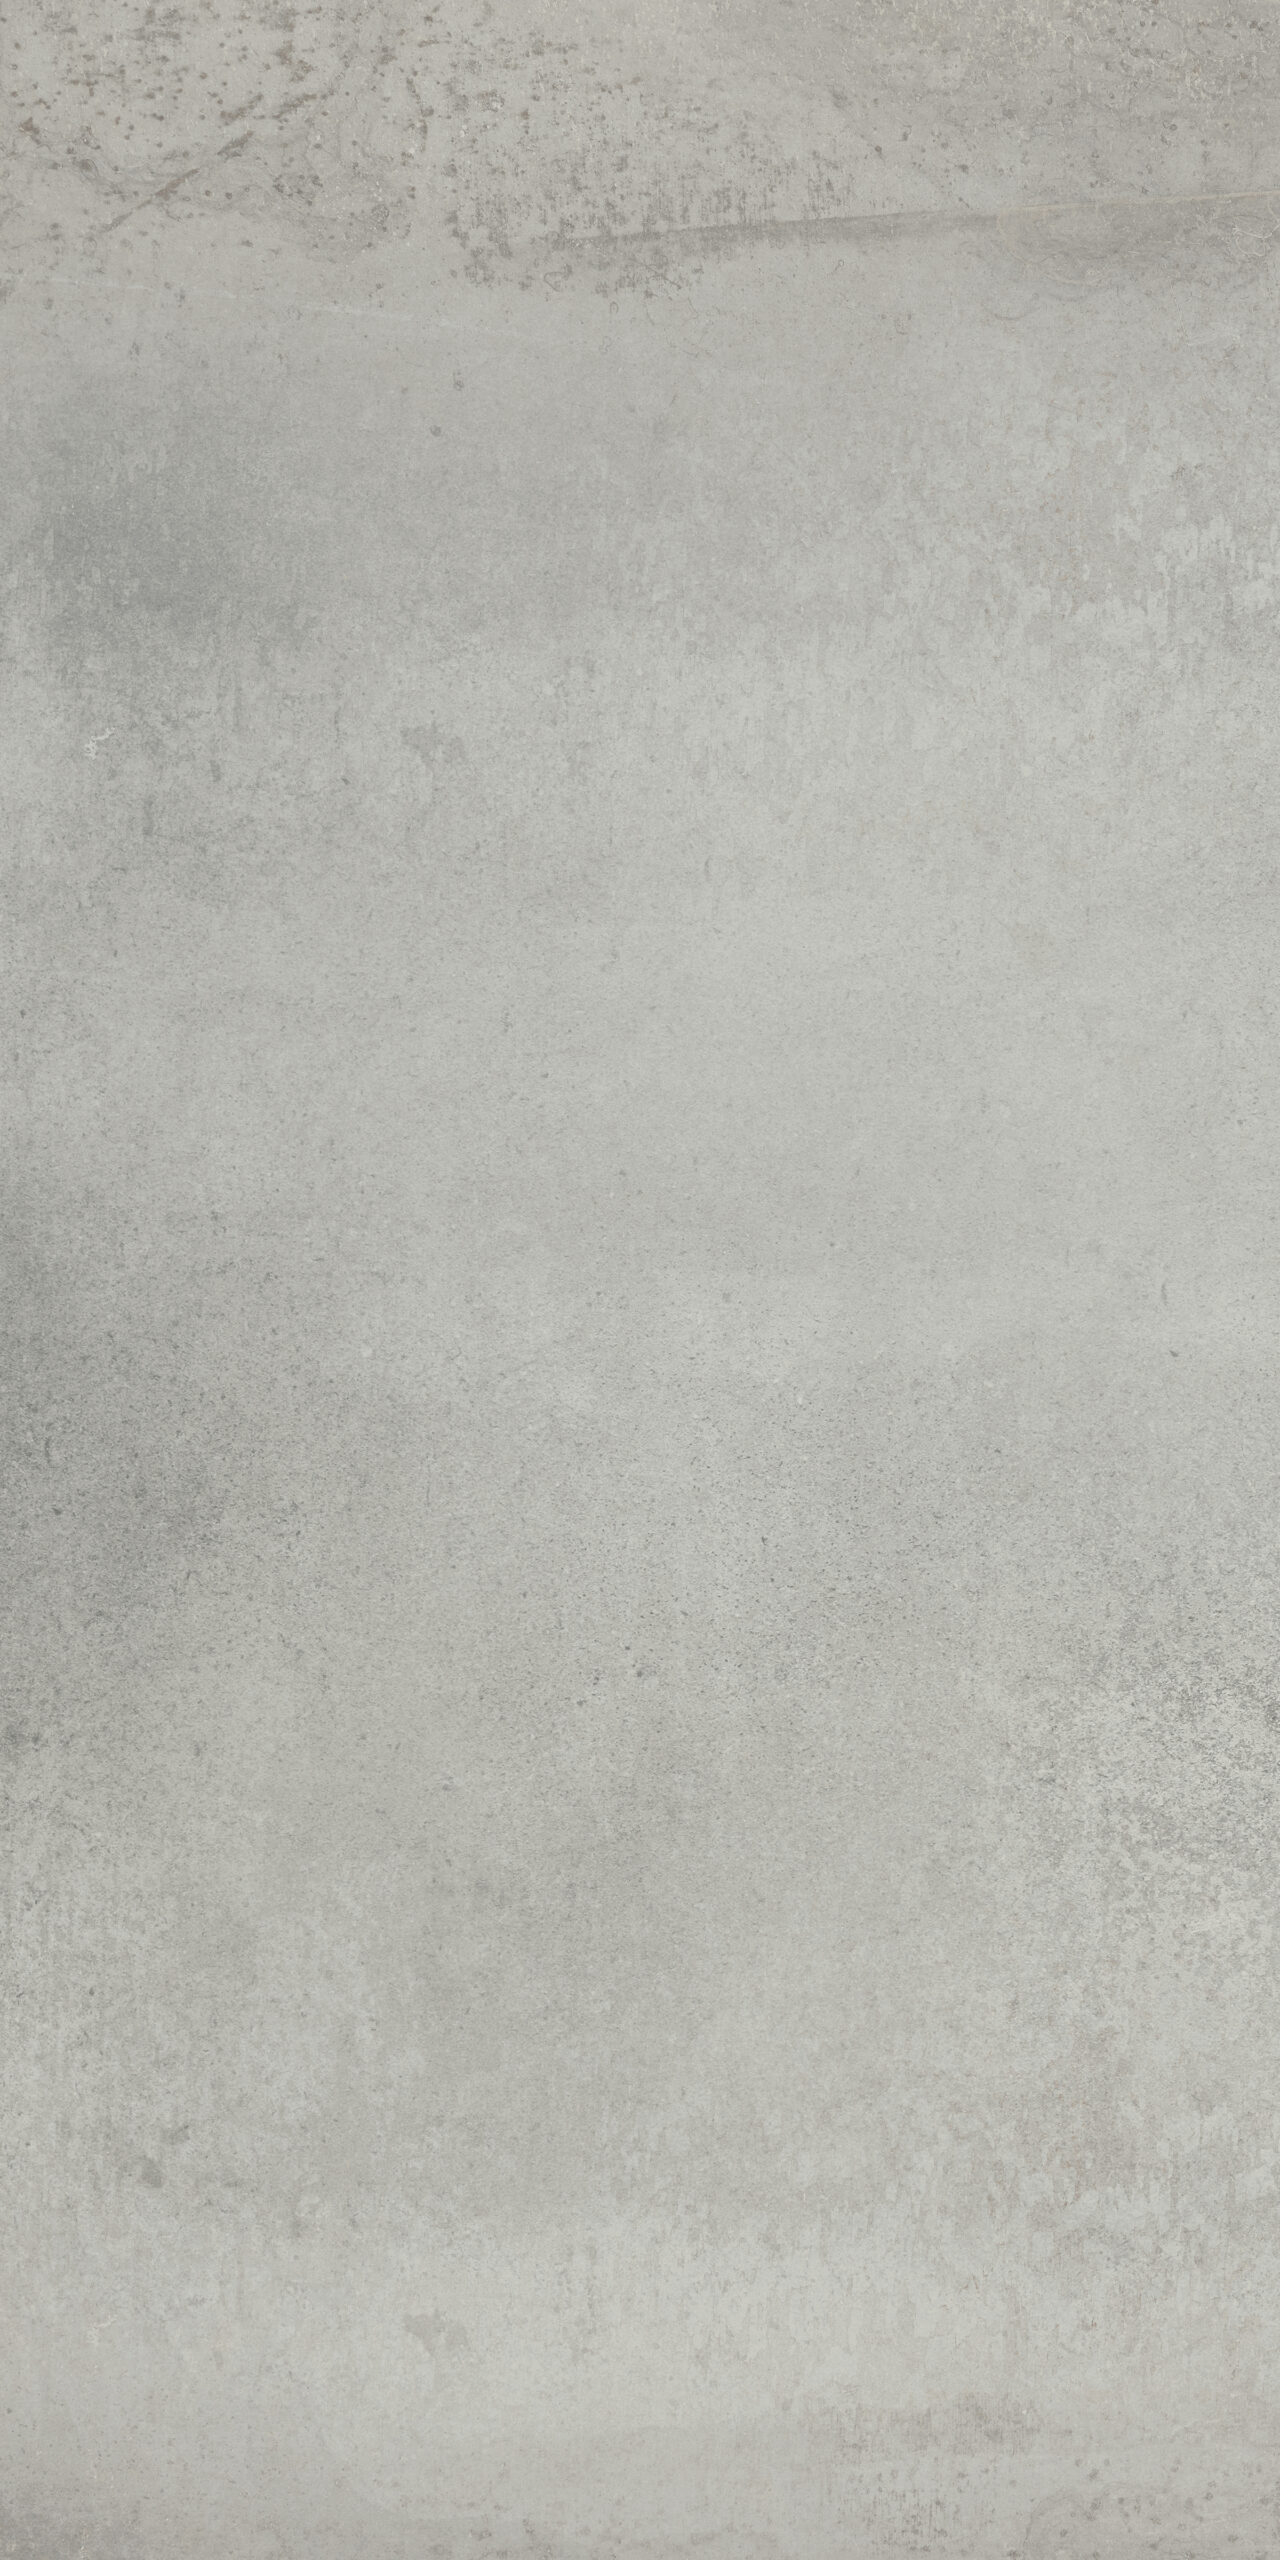 65 527 16x32 Ceraforge Chromium HD Rectified Porcelain Tile scaled